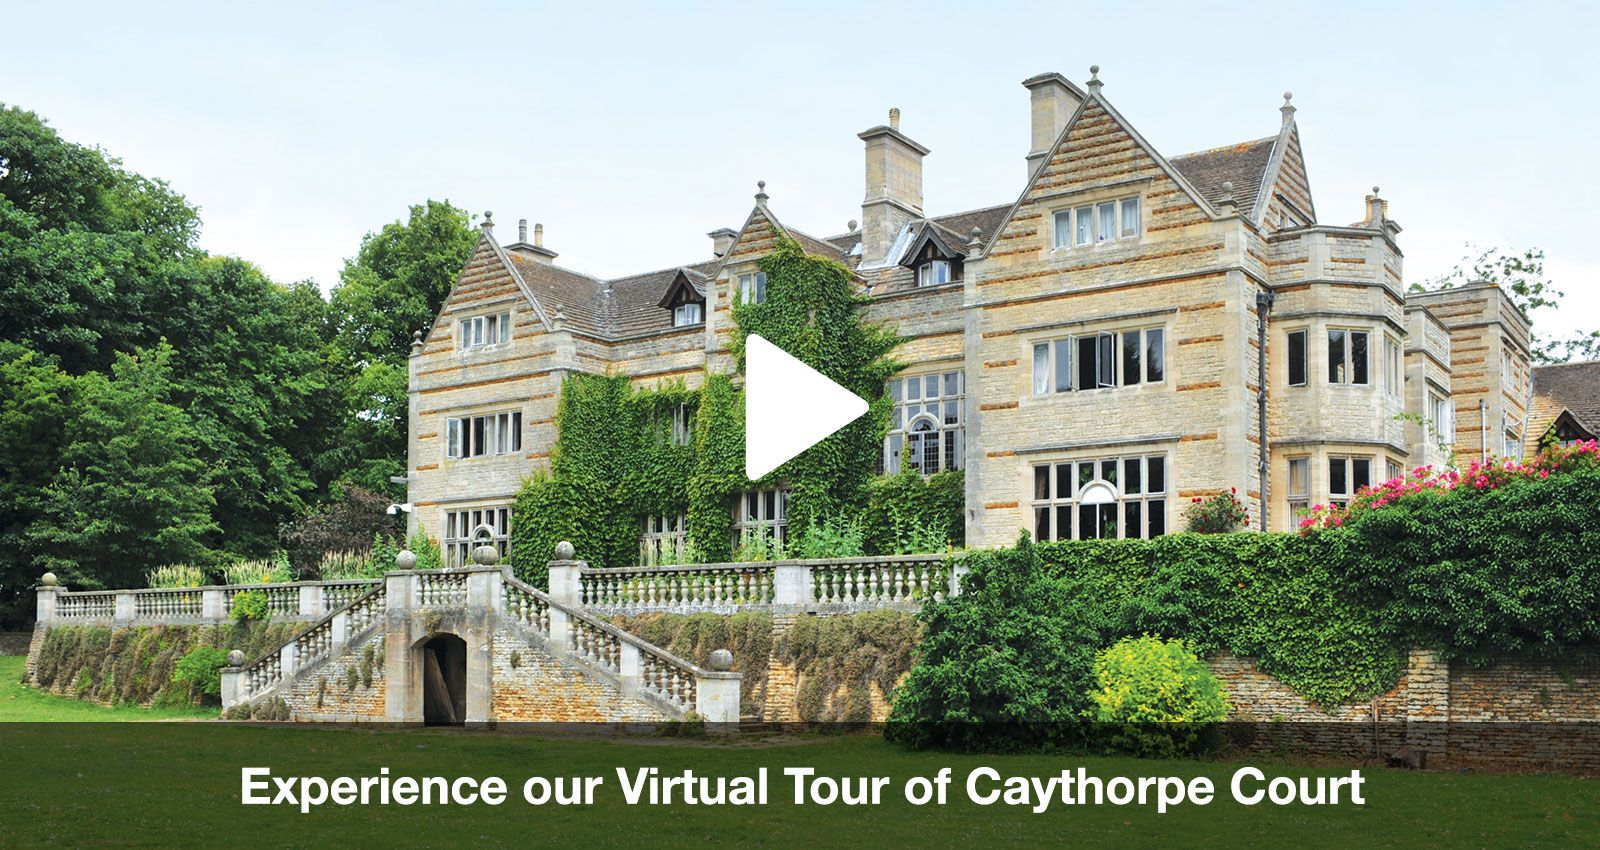 Caythorpe Court for International Students